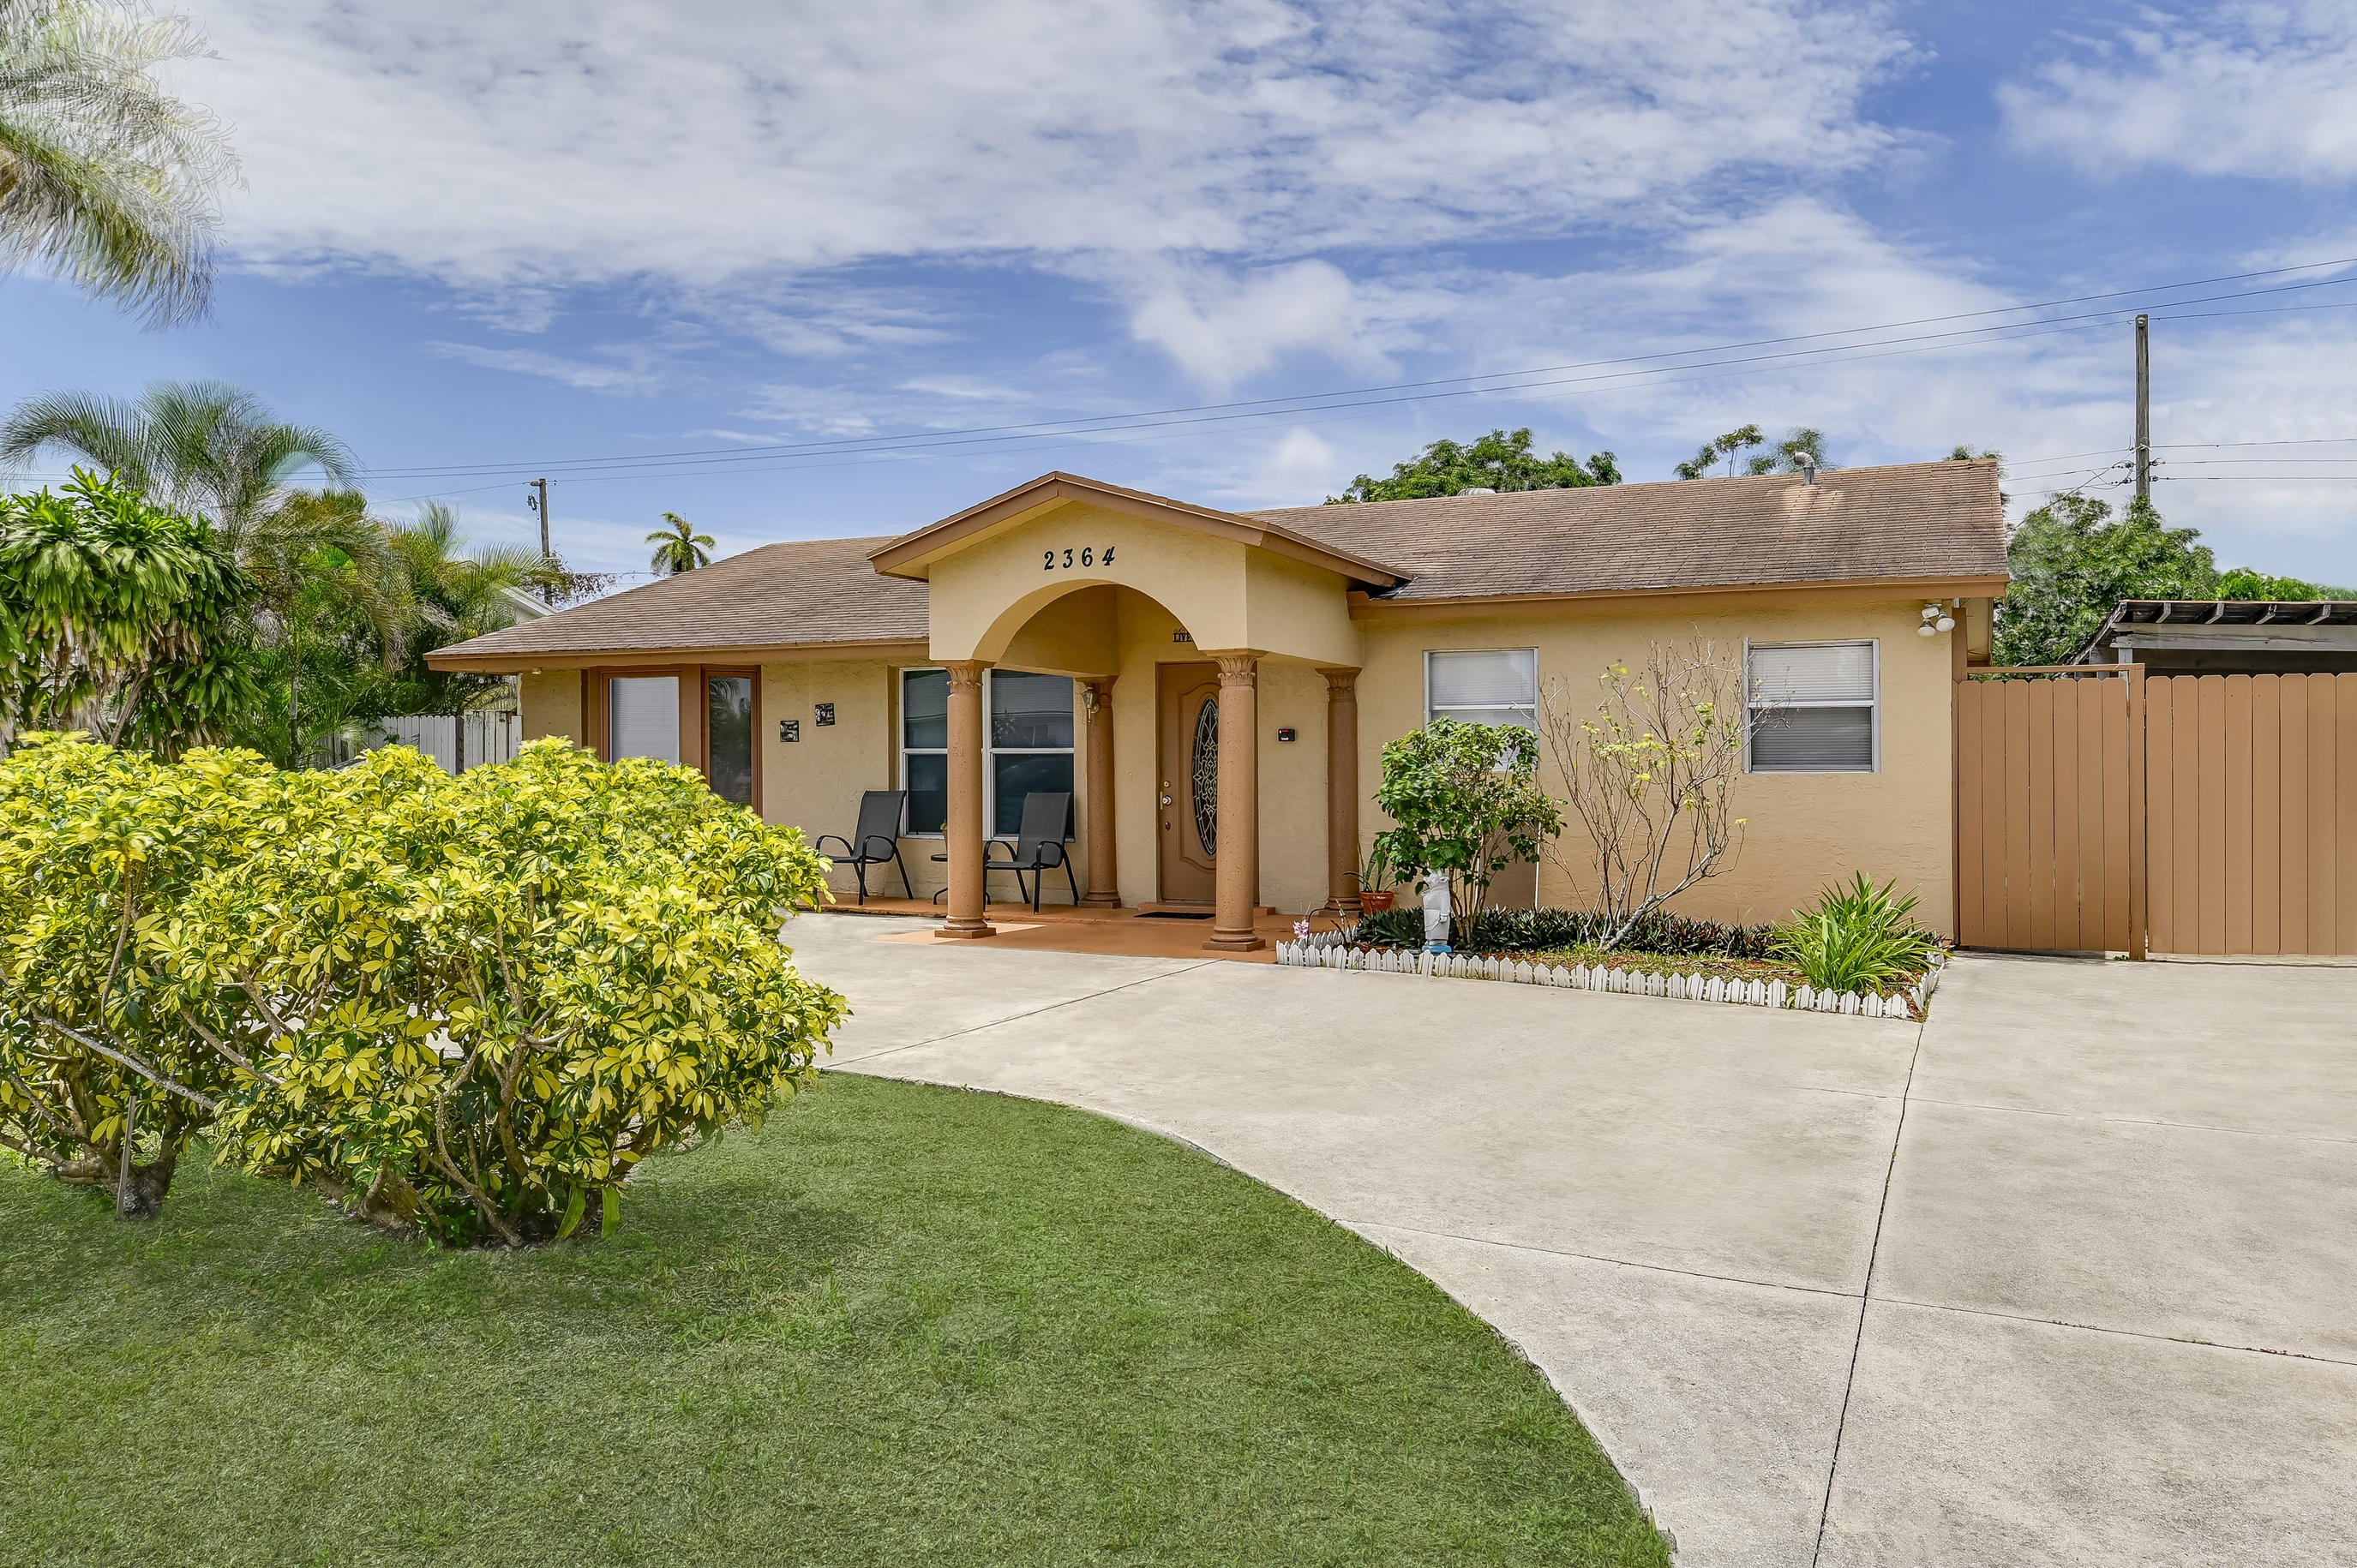 2364 W Lakewood Road  For Sale 10728537, FL